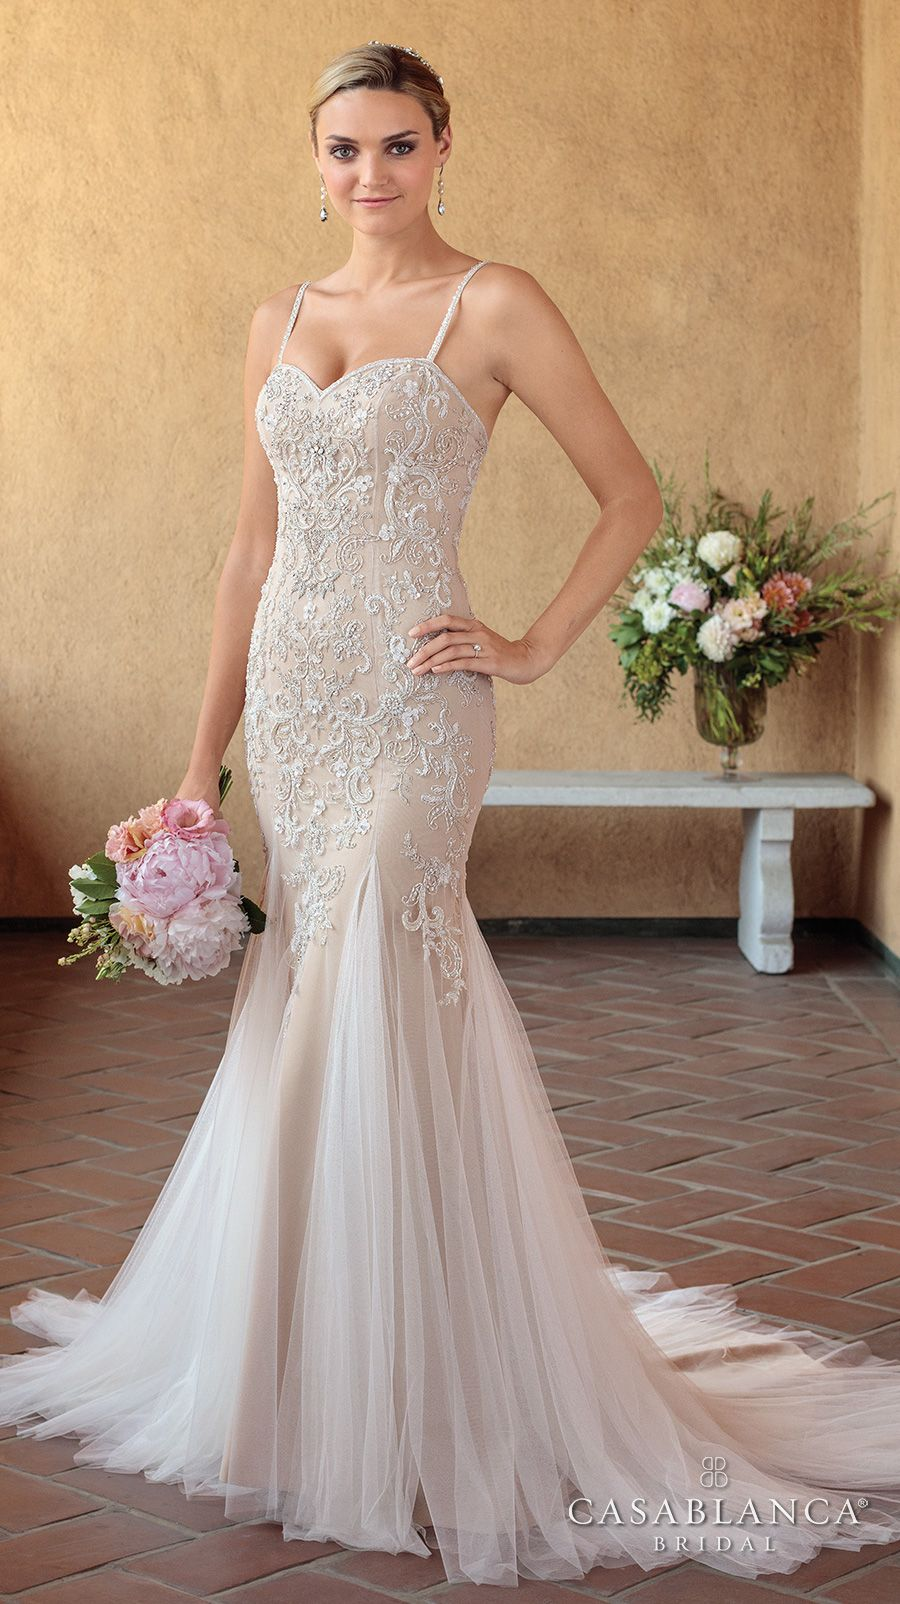 The spring casablanca bridal collection is all kinds of